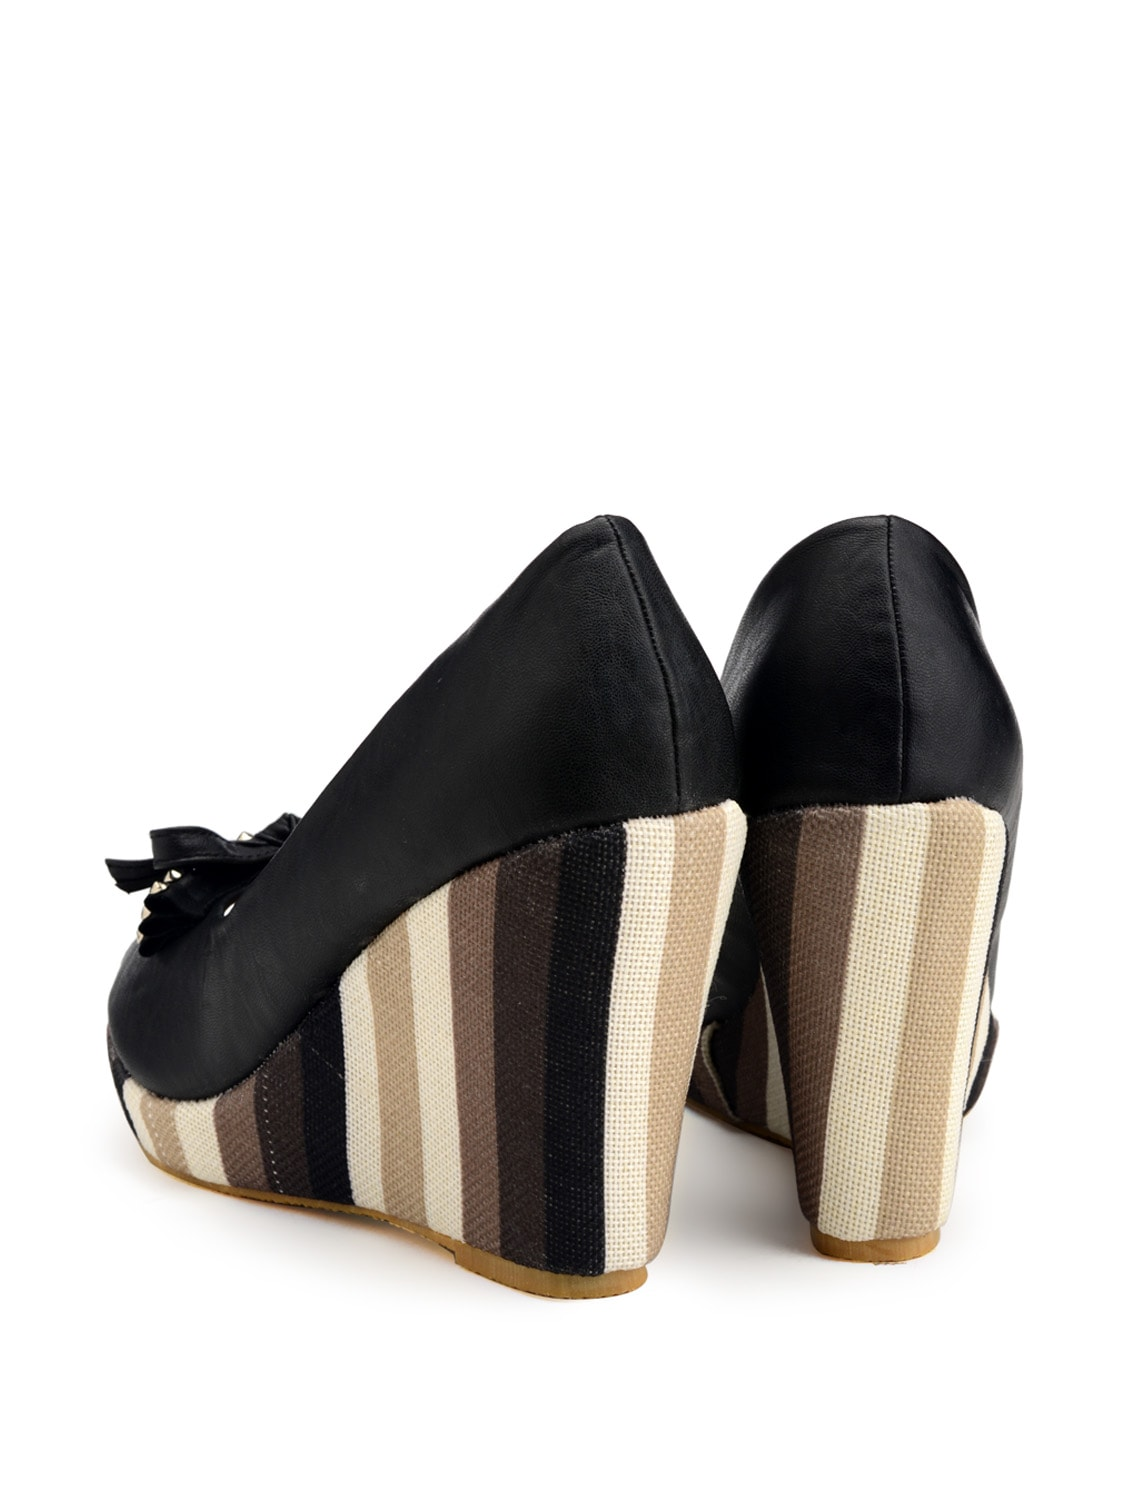 aefead33e83b Buy Black Wedge Sandals With A Striped Heel for Women from Carlton London  for ₹2995 at 0% off